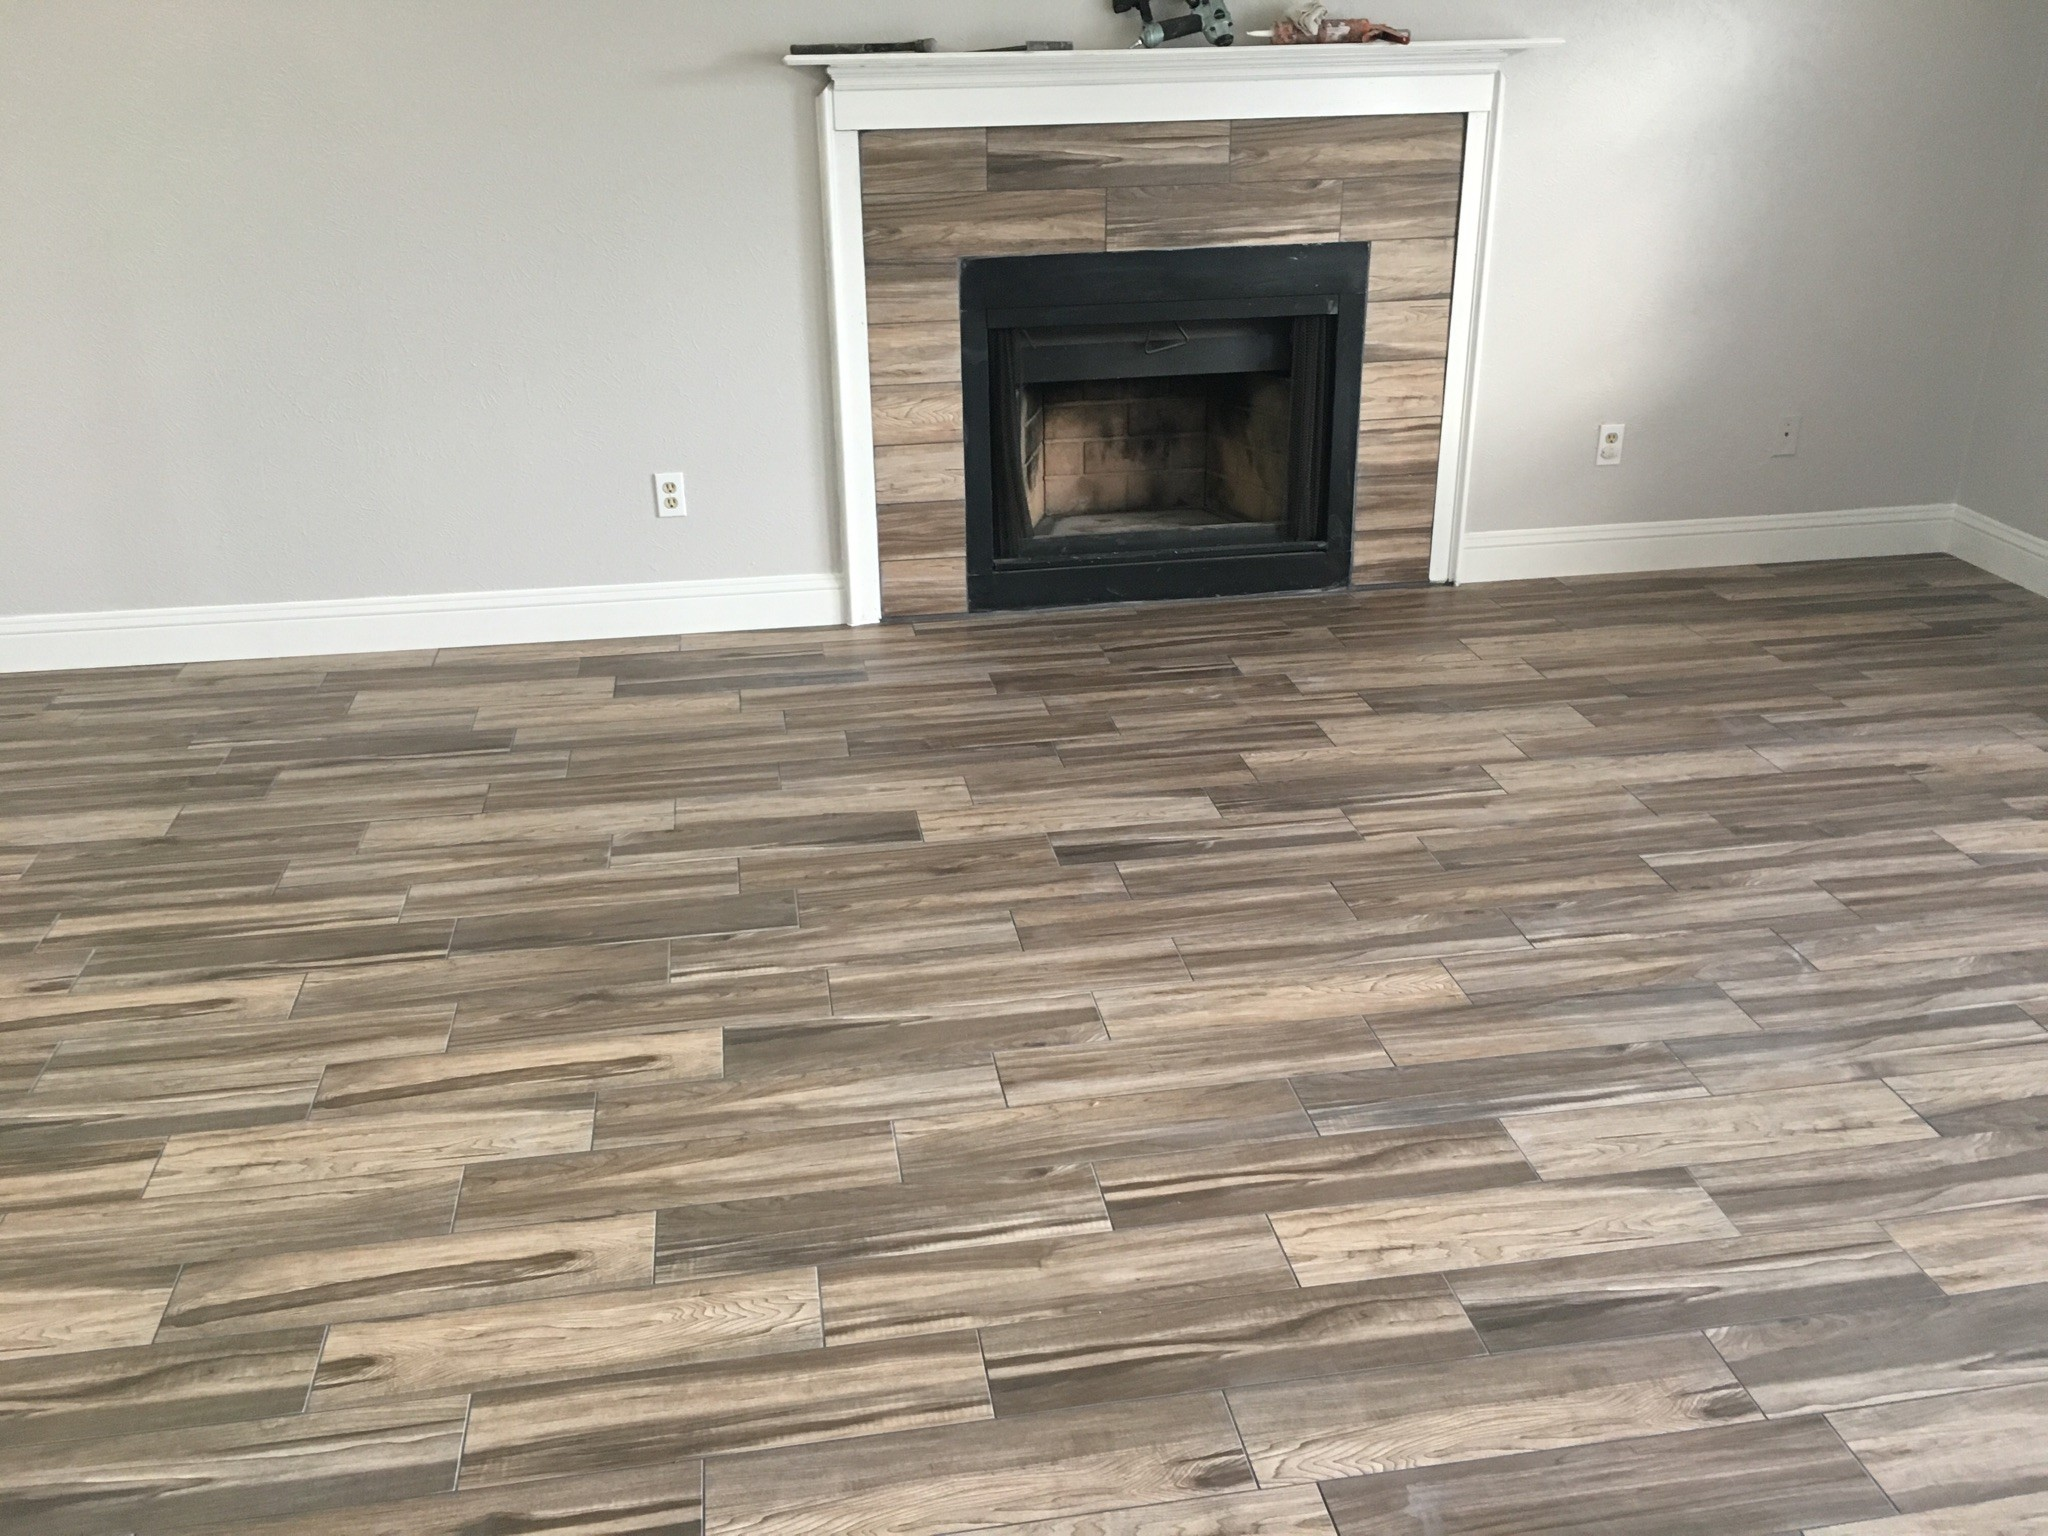 Tile Carolina Timber 6x24 Beige It Looks Like Wood